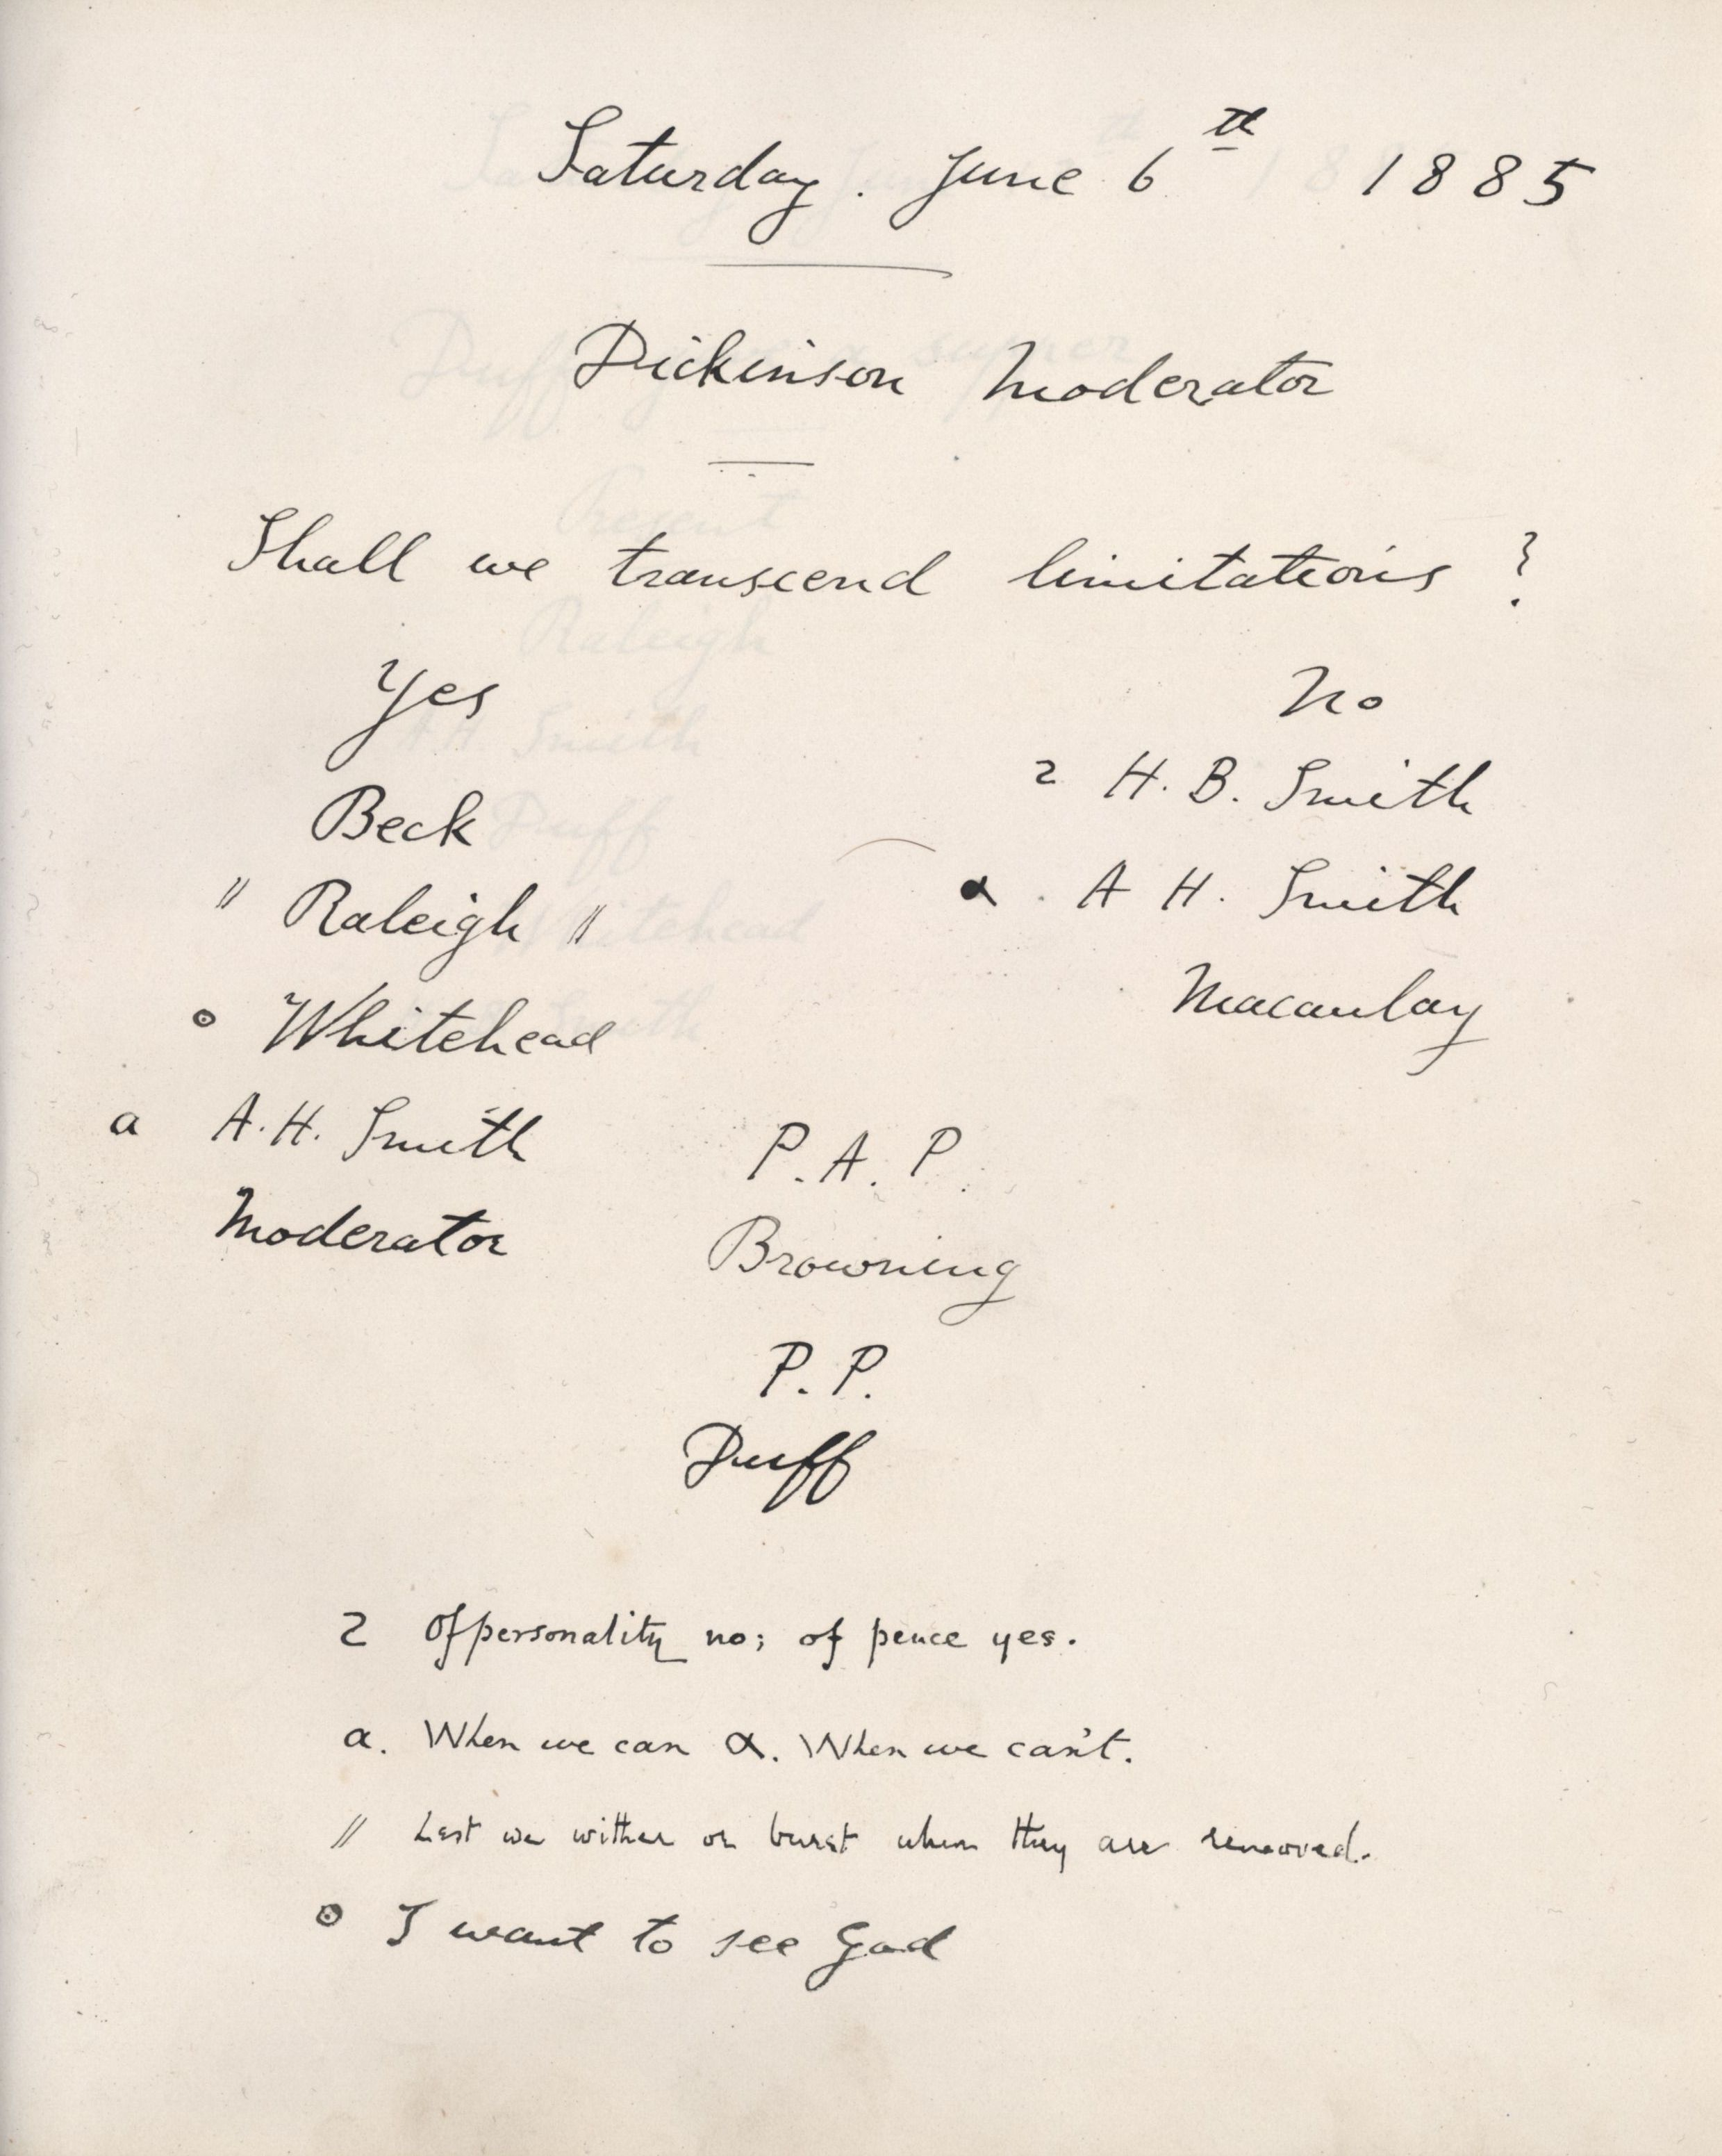 Minutes of a meeting, possibly Dickinson's first as Moderator, in which he asked 'Shall we transcend limitations?'. [KCAS/39/1/10, 6 June 1885]